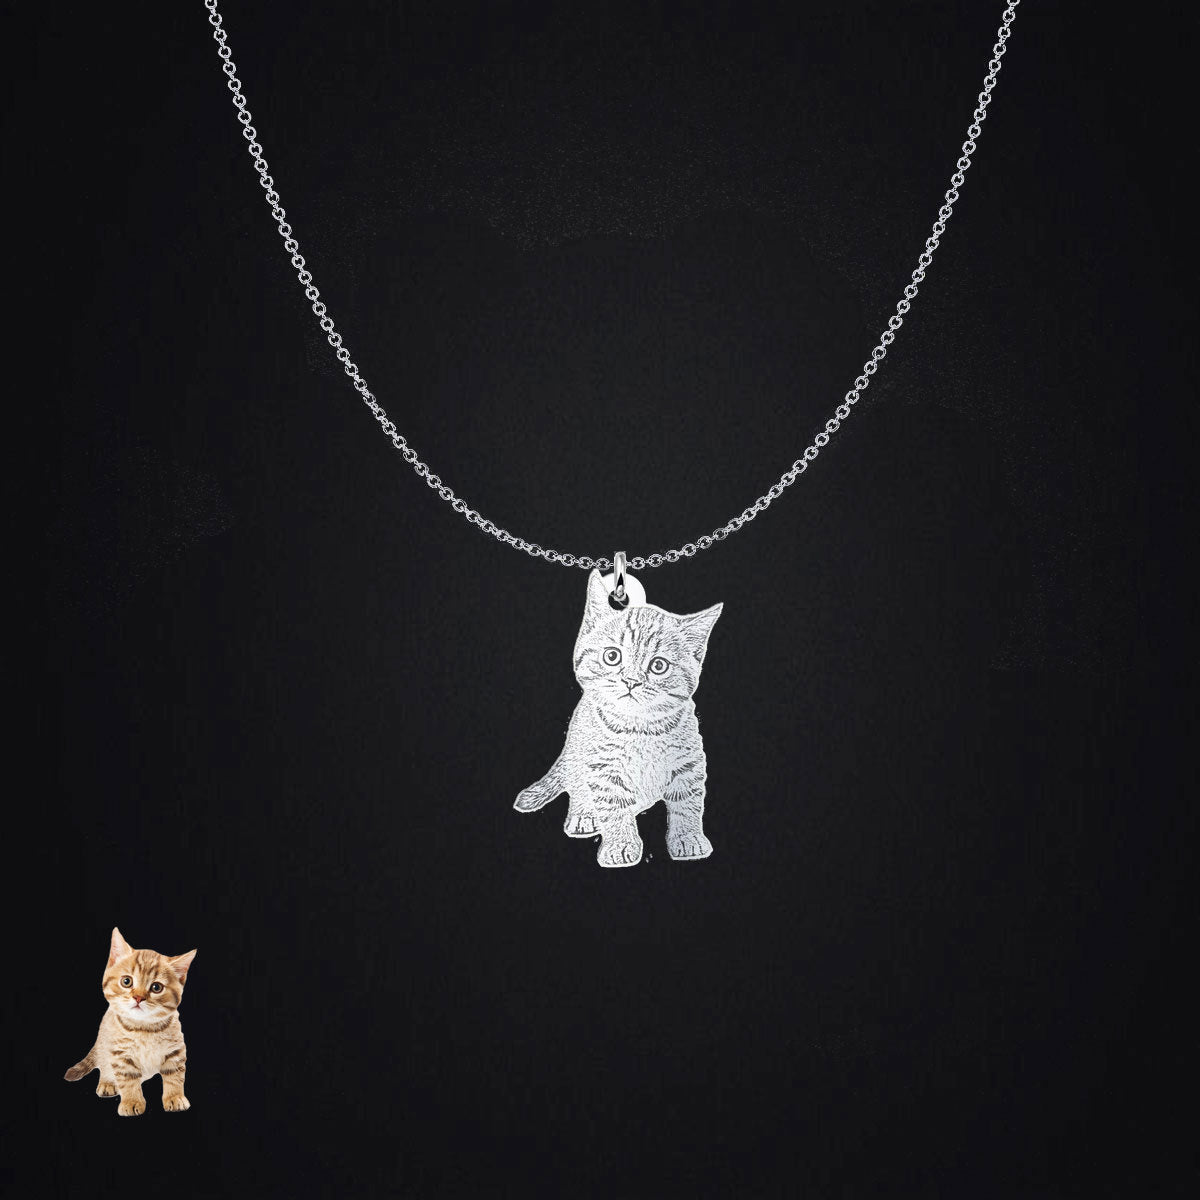 Silhouette Pendant - Love Kitty Cat